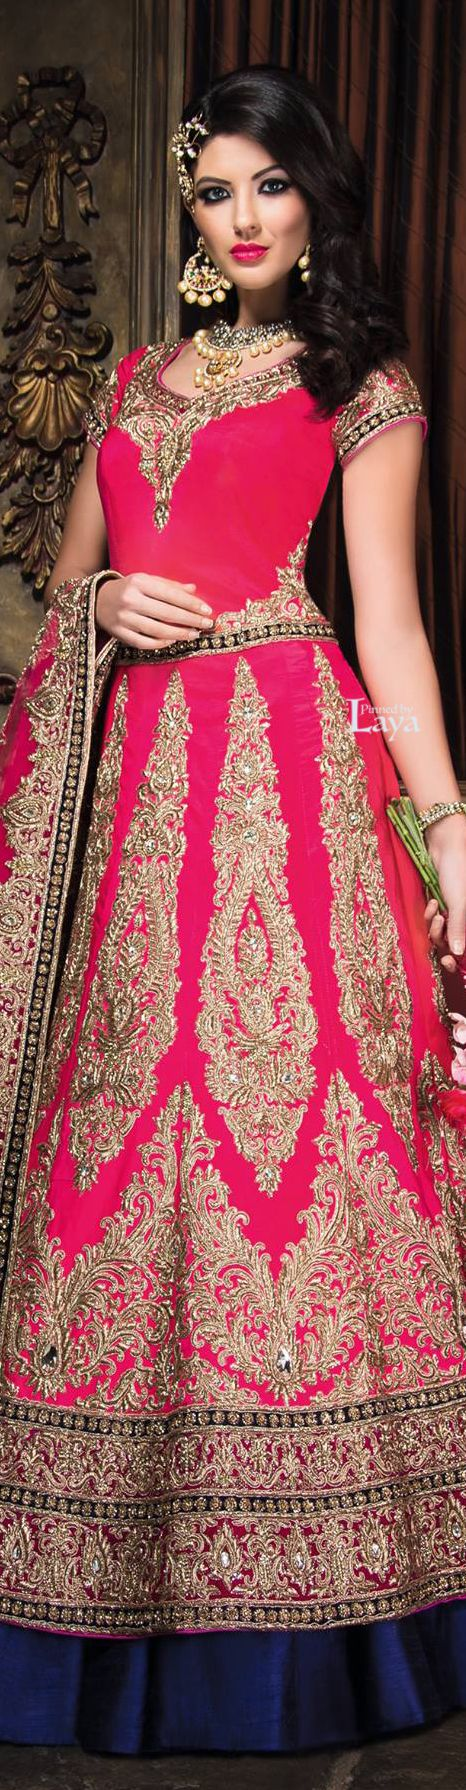 Saree for women wedding  best images about suits on pinterest  designer bridal and lounges